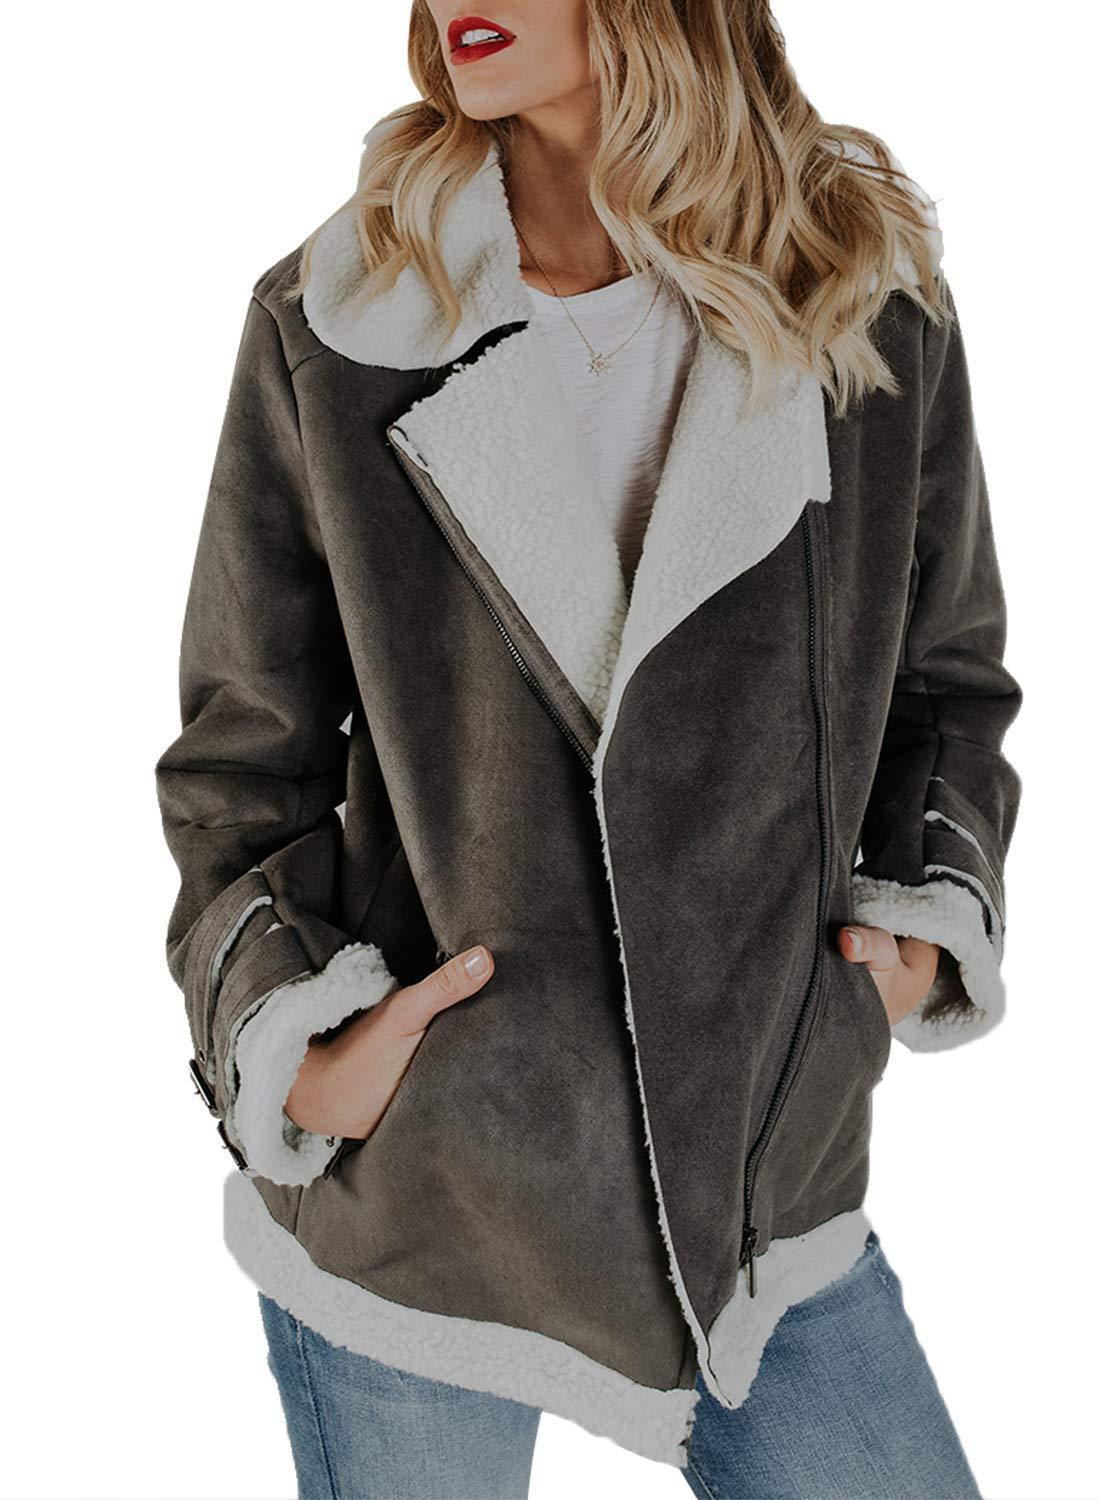 0c3a0cfca16e1 New Motorbike Women Suede Leather Designer Jacket Plus Size Pockets Pilot  Coats Turndown Collar Lamb Warm Coat Waterproof Jackets Womens Jackets From  ...